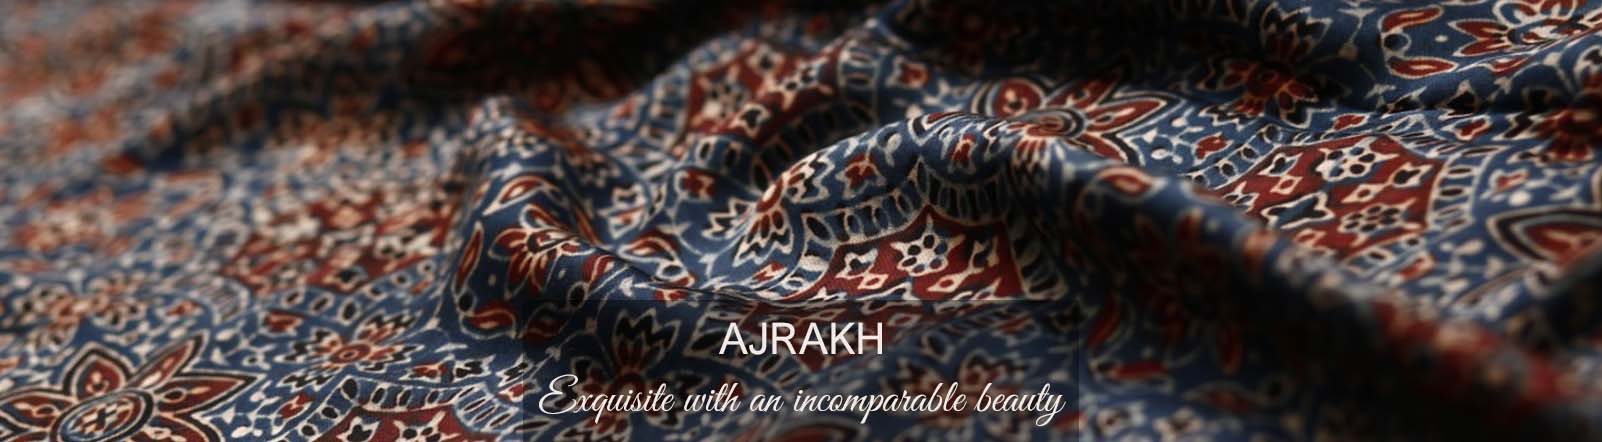 Ajrakh Blockprint : Highest Standard of Elegance with Vegetable Dyes